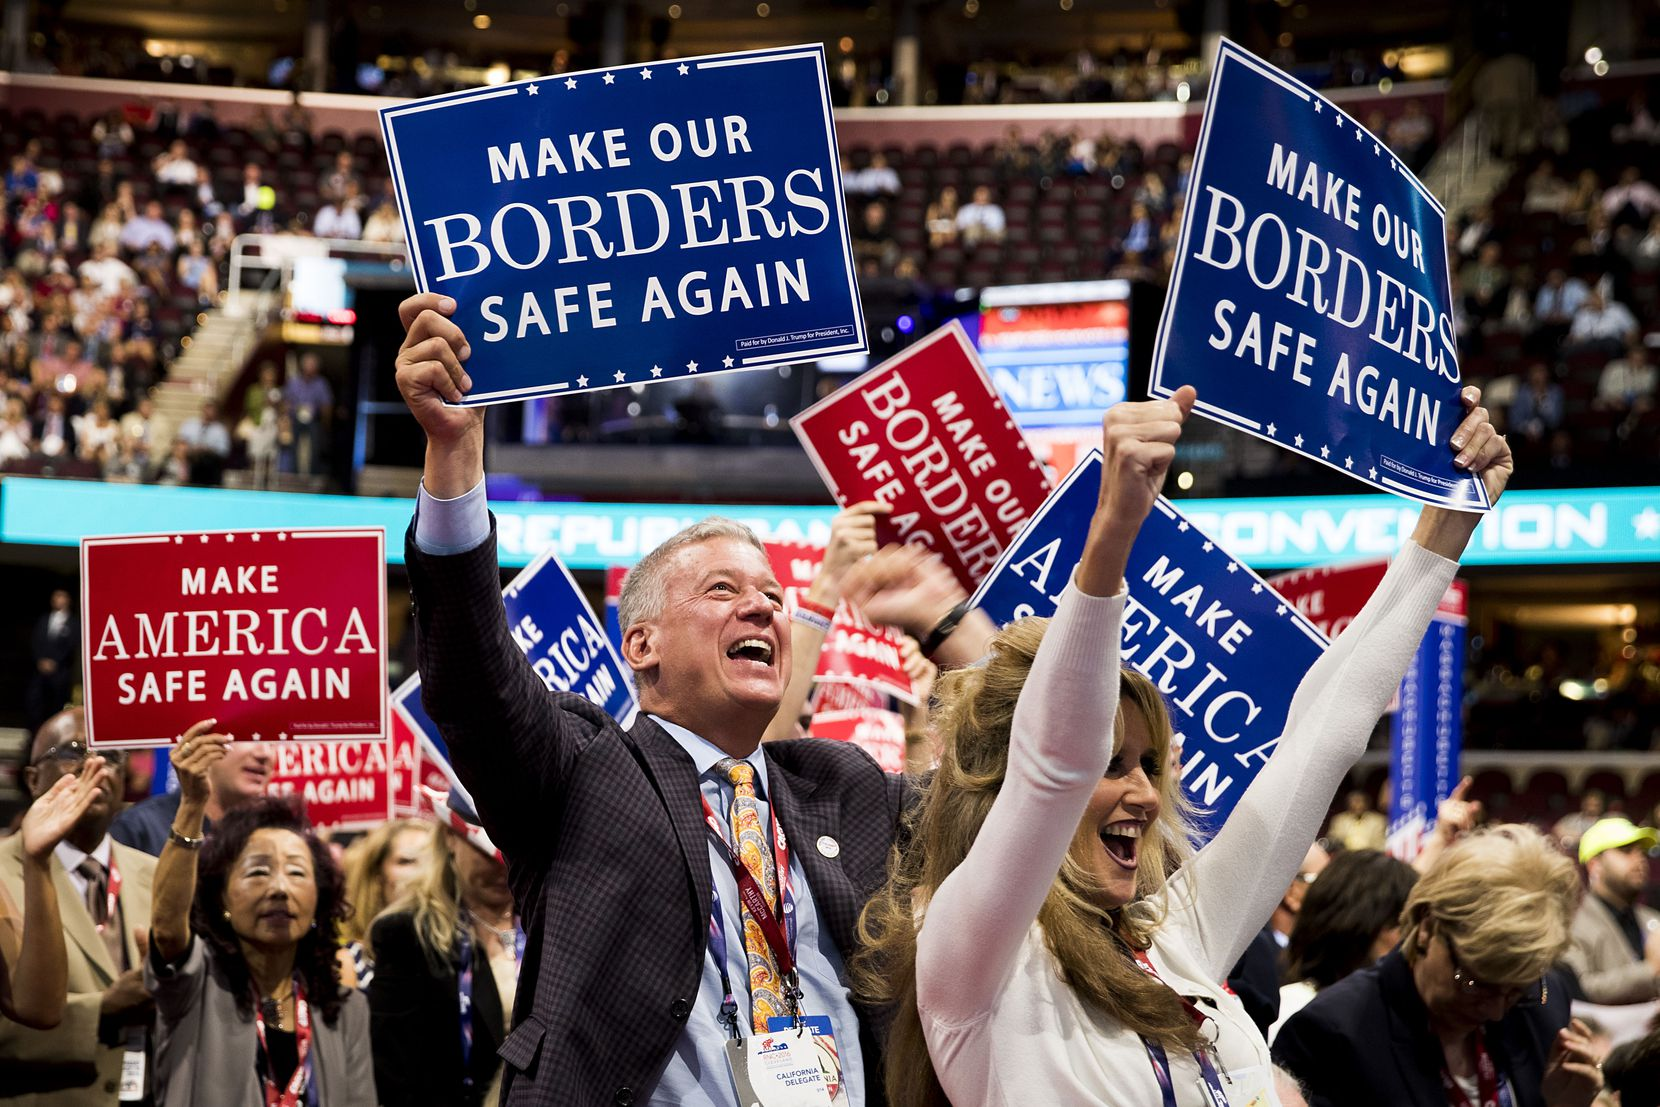 California delegates cheer a speech by U.S. Rep. Michael McCaul of Texas during the second session of the Republican National Convention.